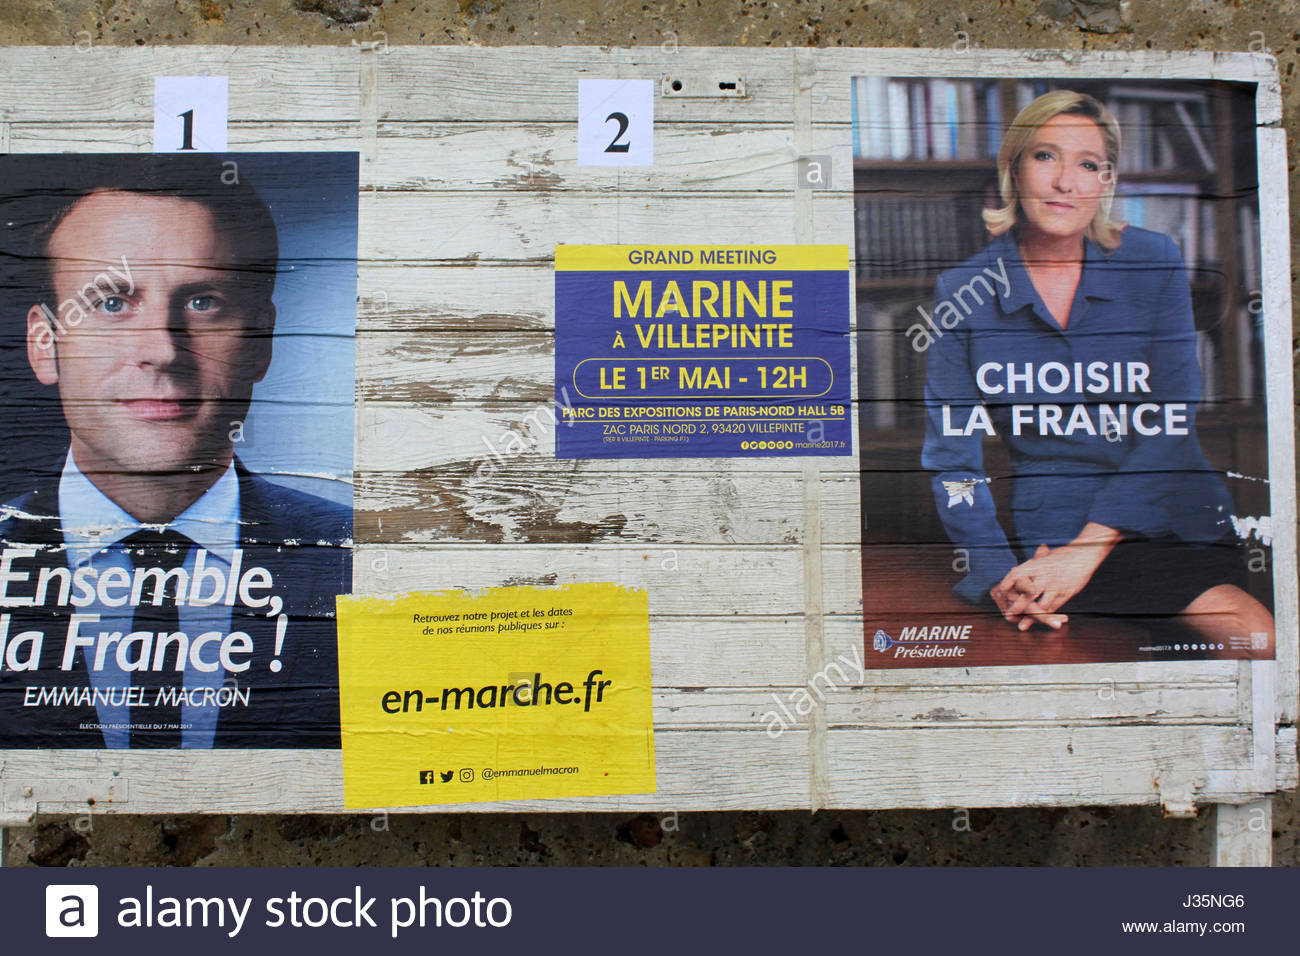 French Presidential Elections 2017 - Emmanuel Macron and Marine Le Pen, candidates for the French presidential election - Stock Image